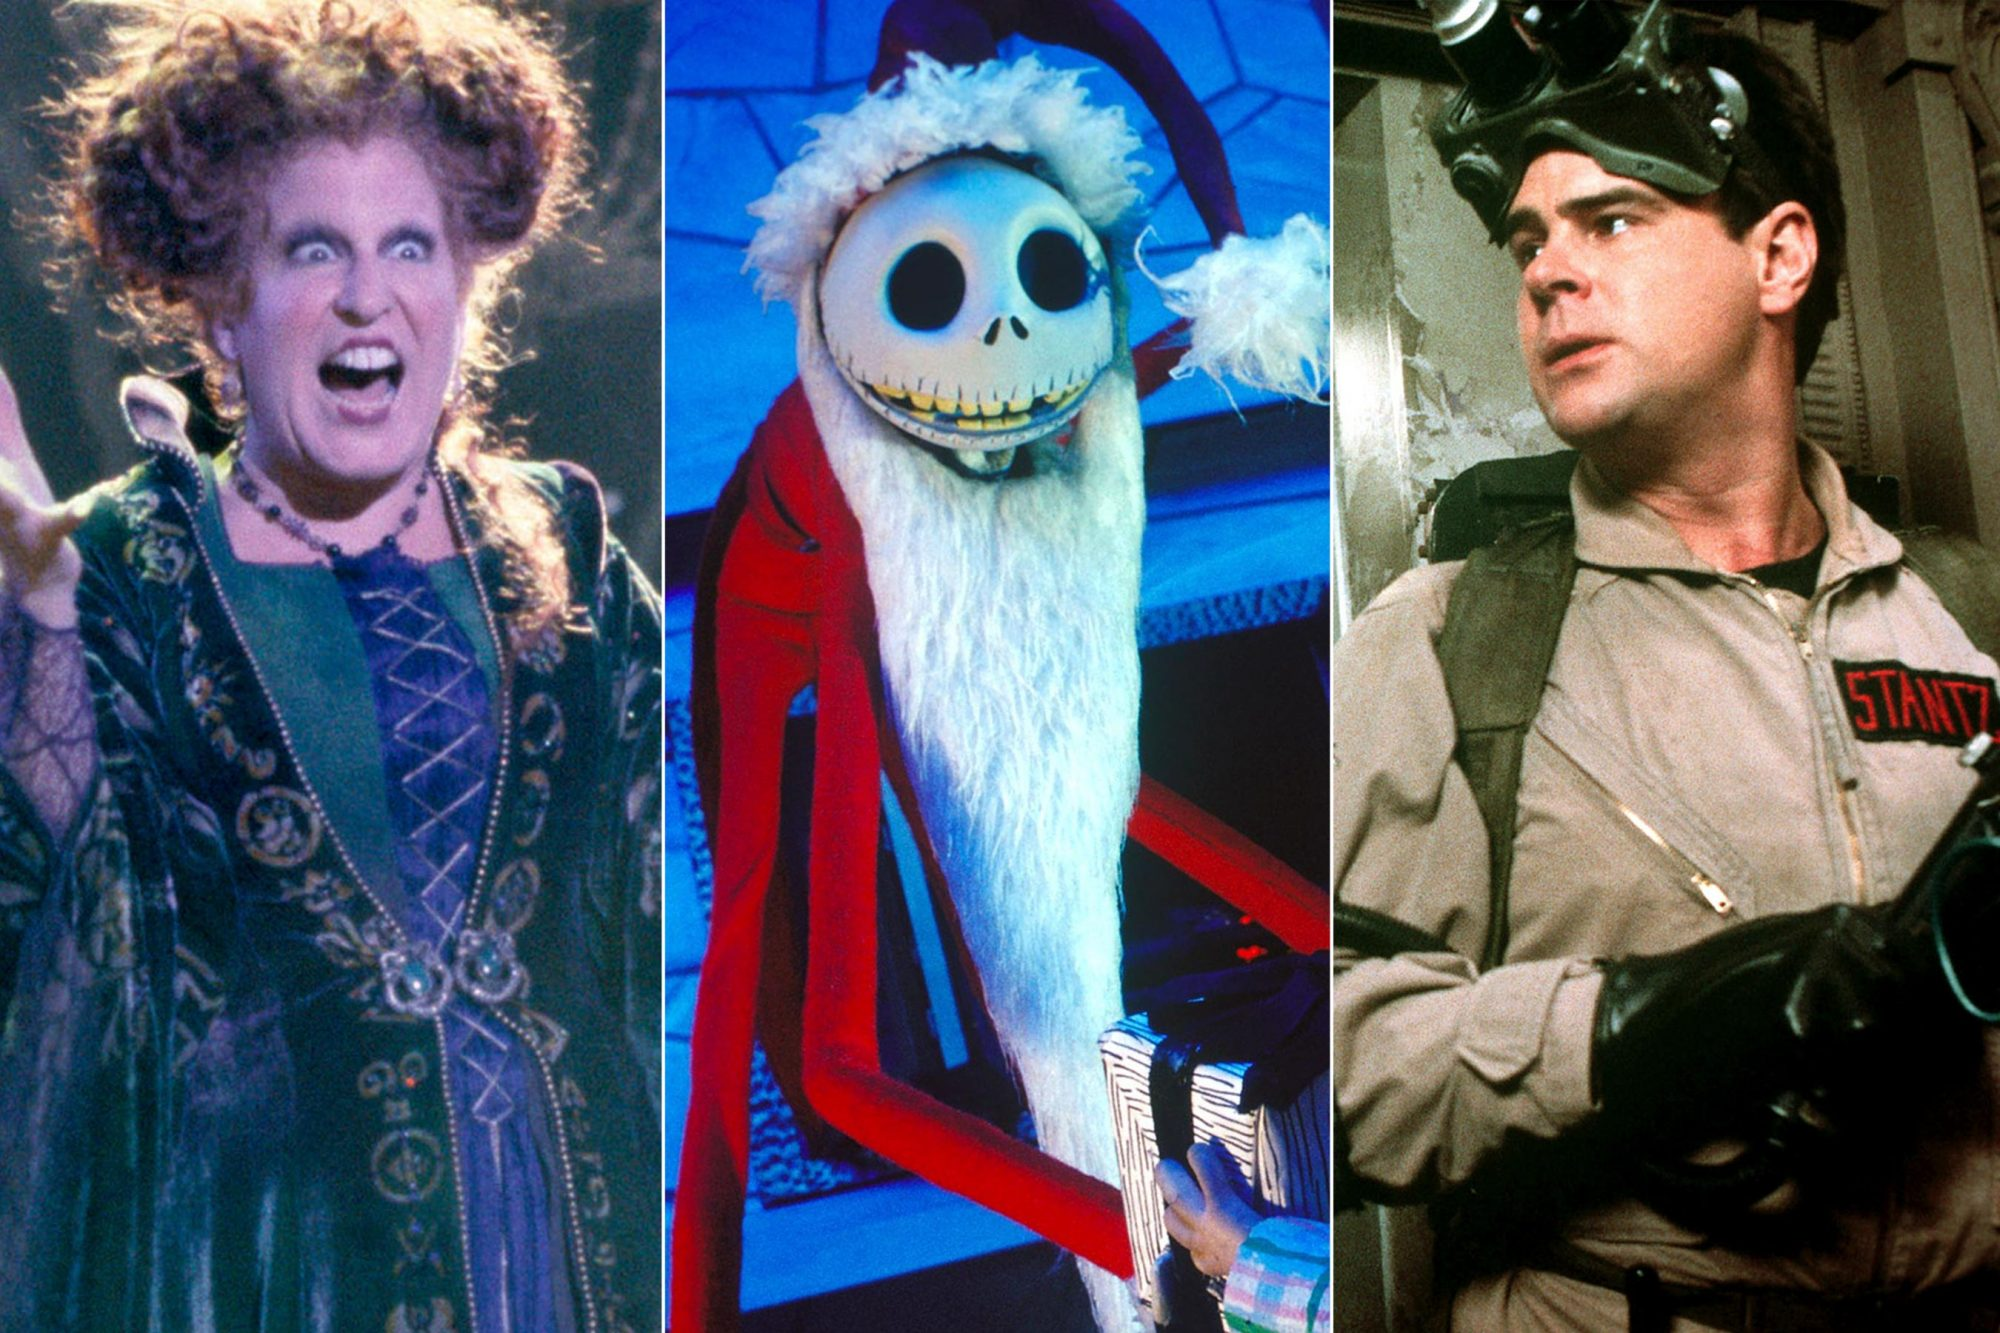 HOCUS POCUS, Bette Midler 1993, (c) Buena Vista/courtesy Everett Collection Nightmare Before Christmas (2007) Jack Skellington (Chris Sarandon) CR: Disney GHOSTBUSTERS, Dan Aykroyd, 1984, (c) Columbia/courtesy Everett Collection